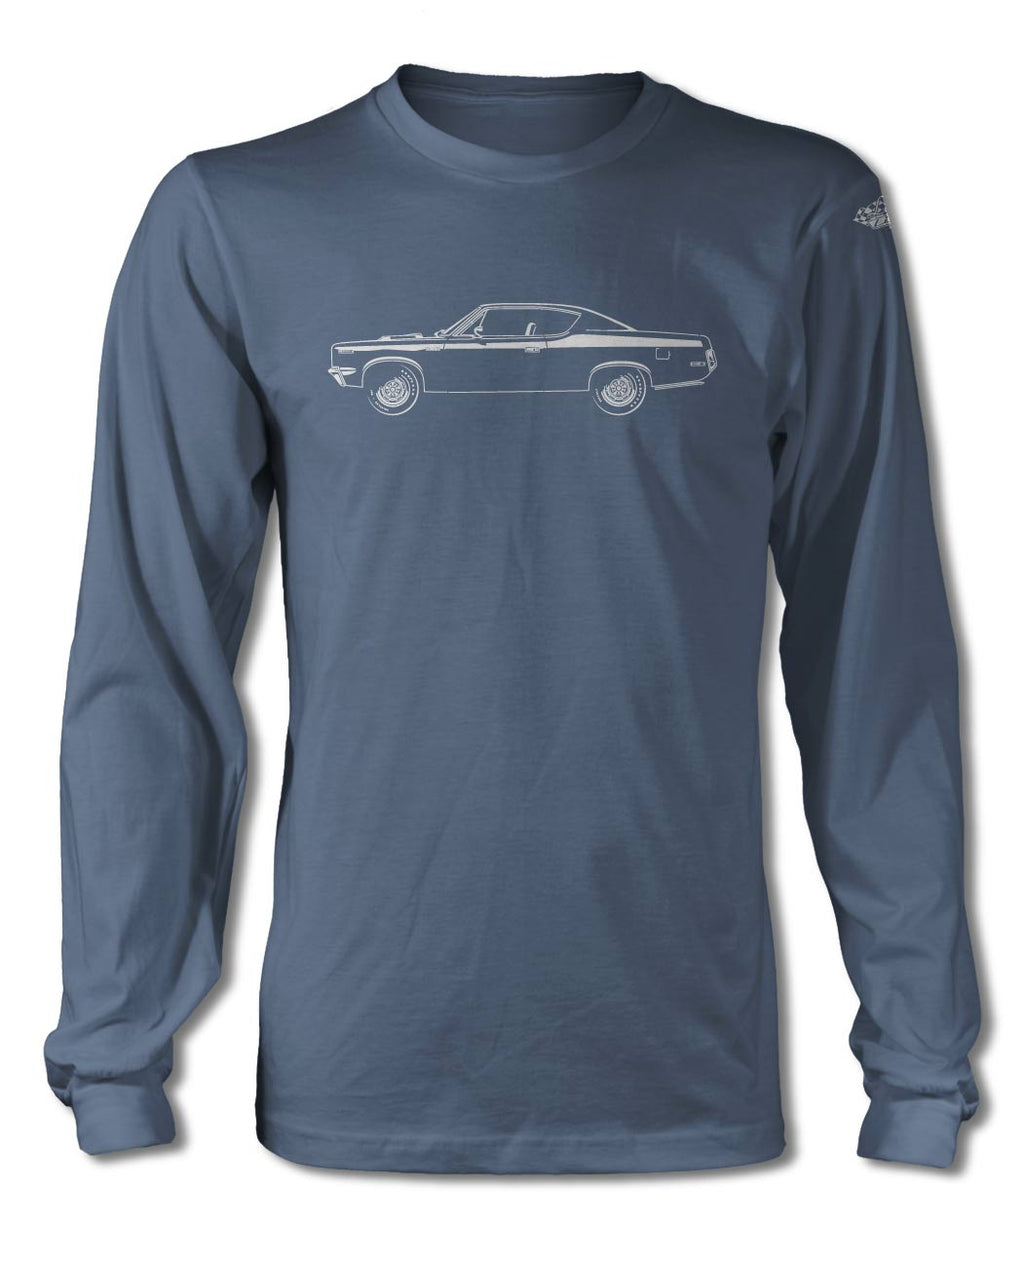 1970 AMC Rebel The Machine Coupe T-Shirt - Long Sleeves - Side View